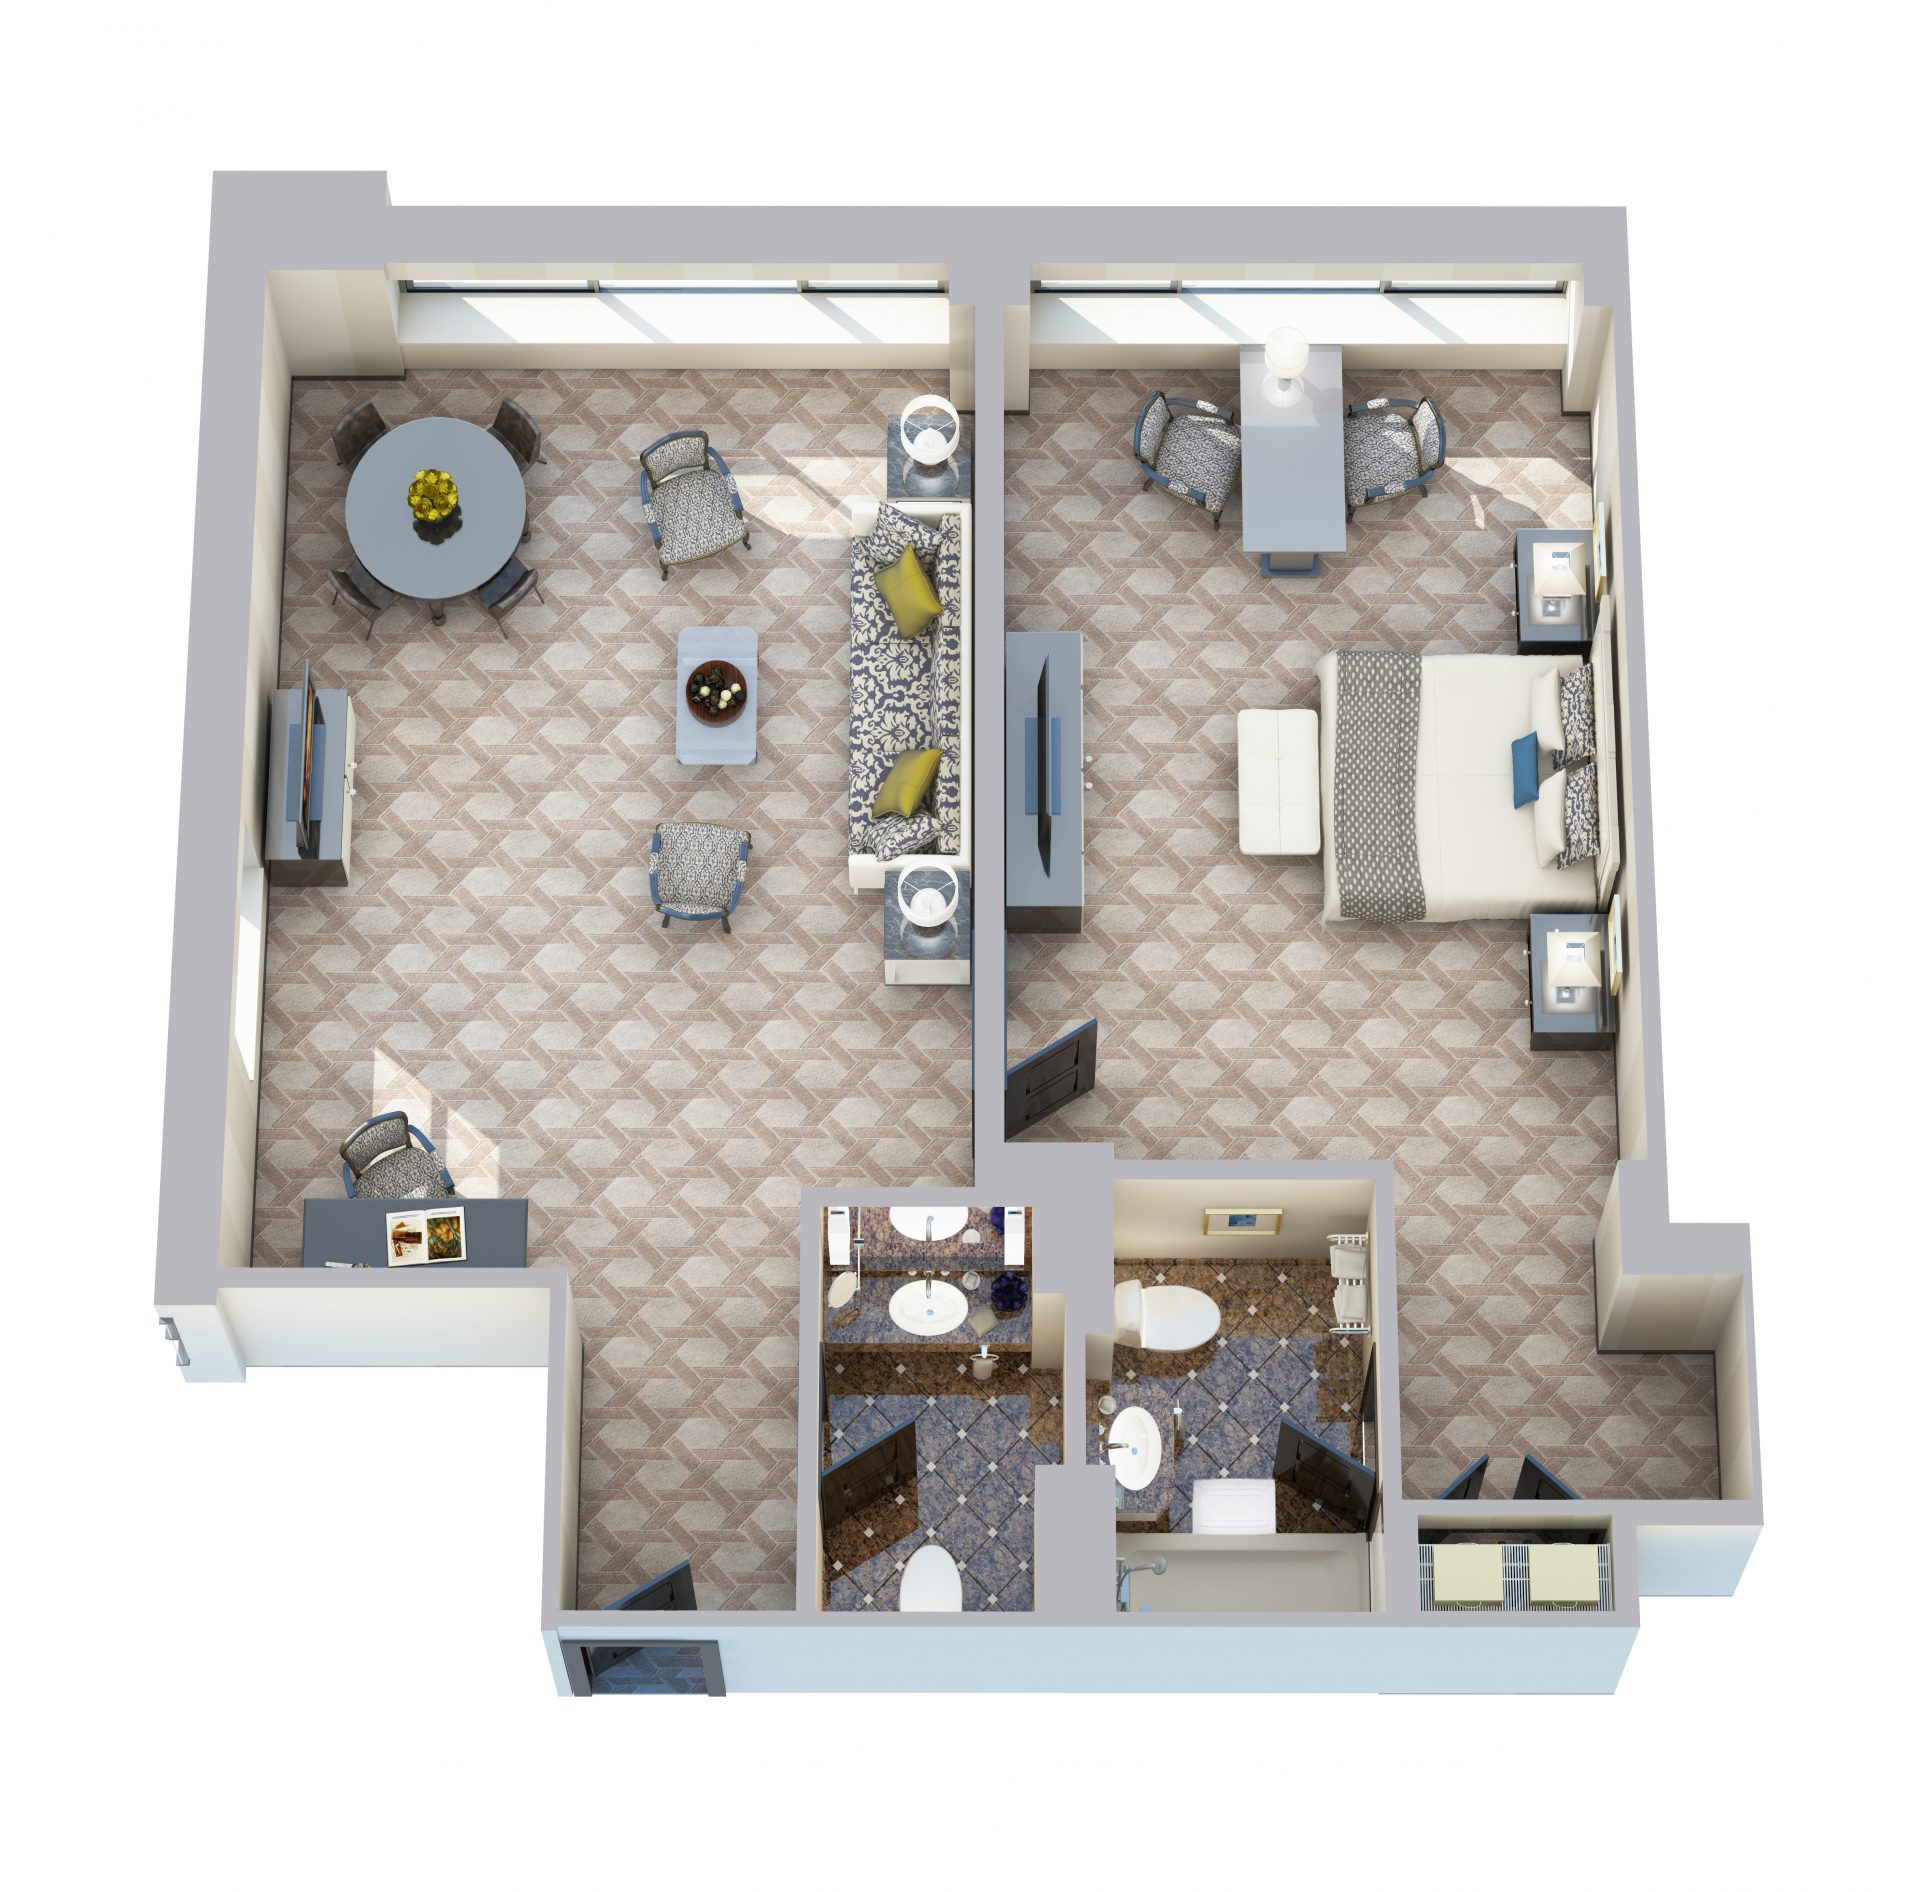 Deluxe One Bedroom Suite - 790 sq ft